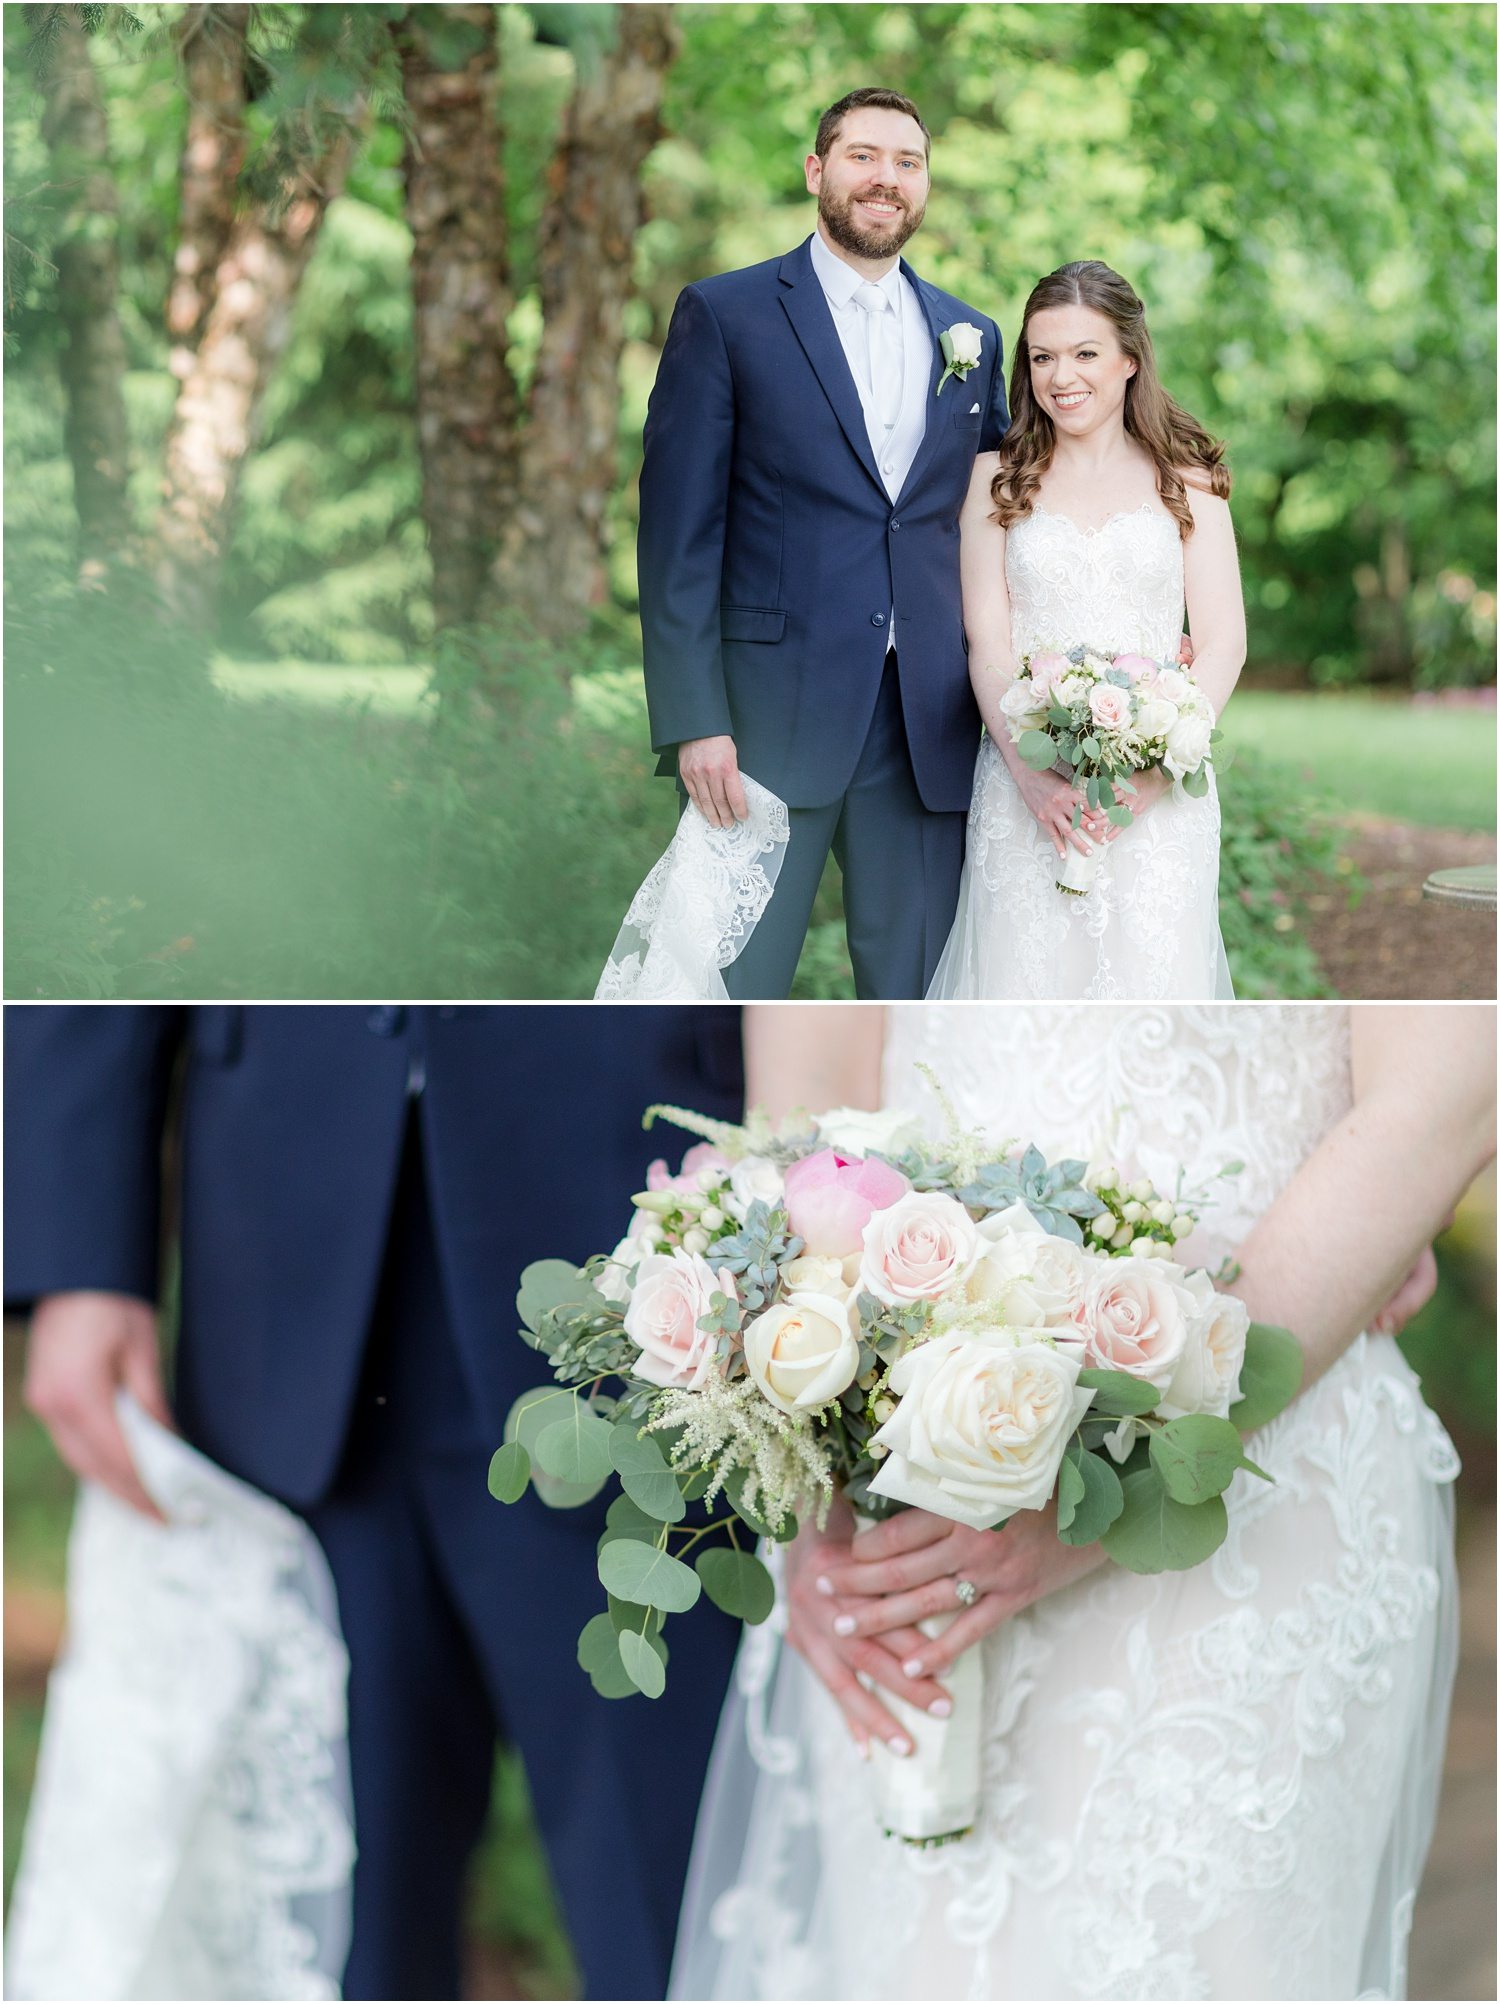 Traditional Bride and groom portraits at The Grain House in Basking Ridge, NJ.